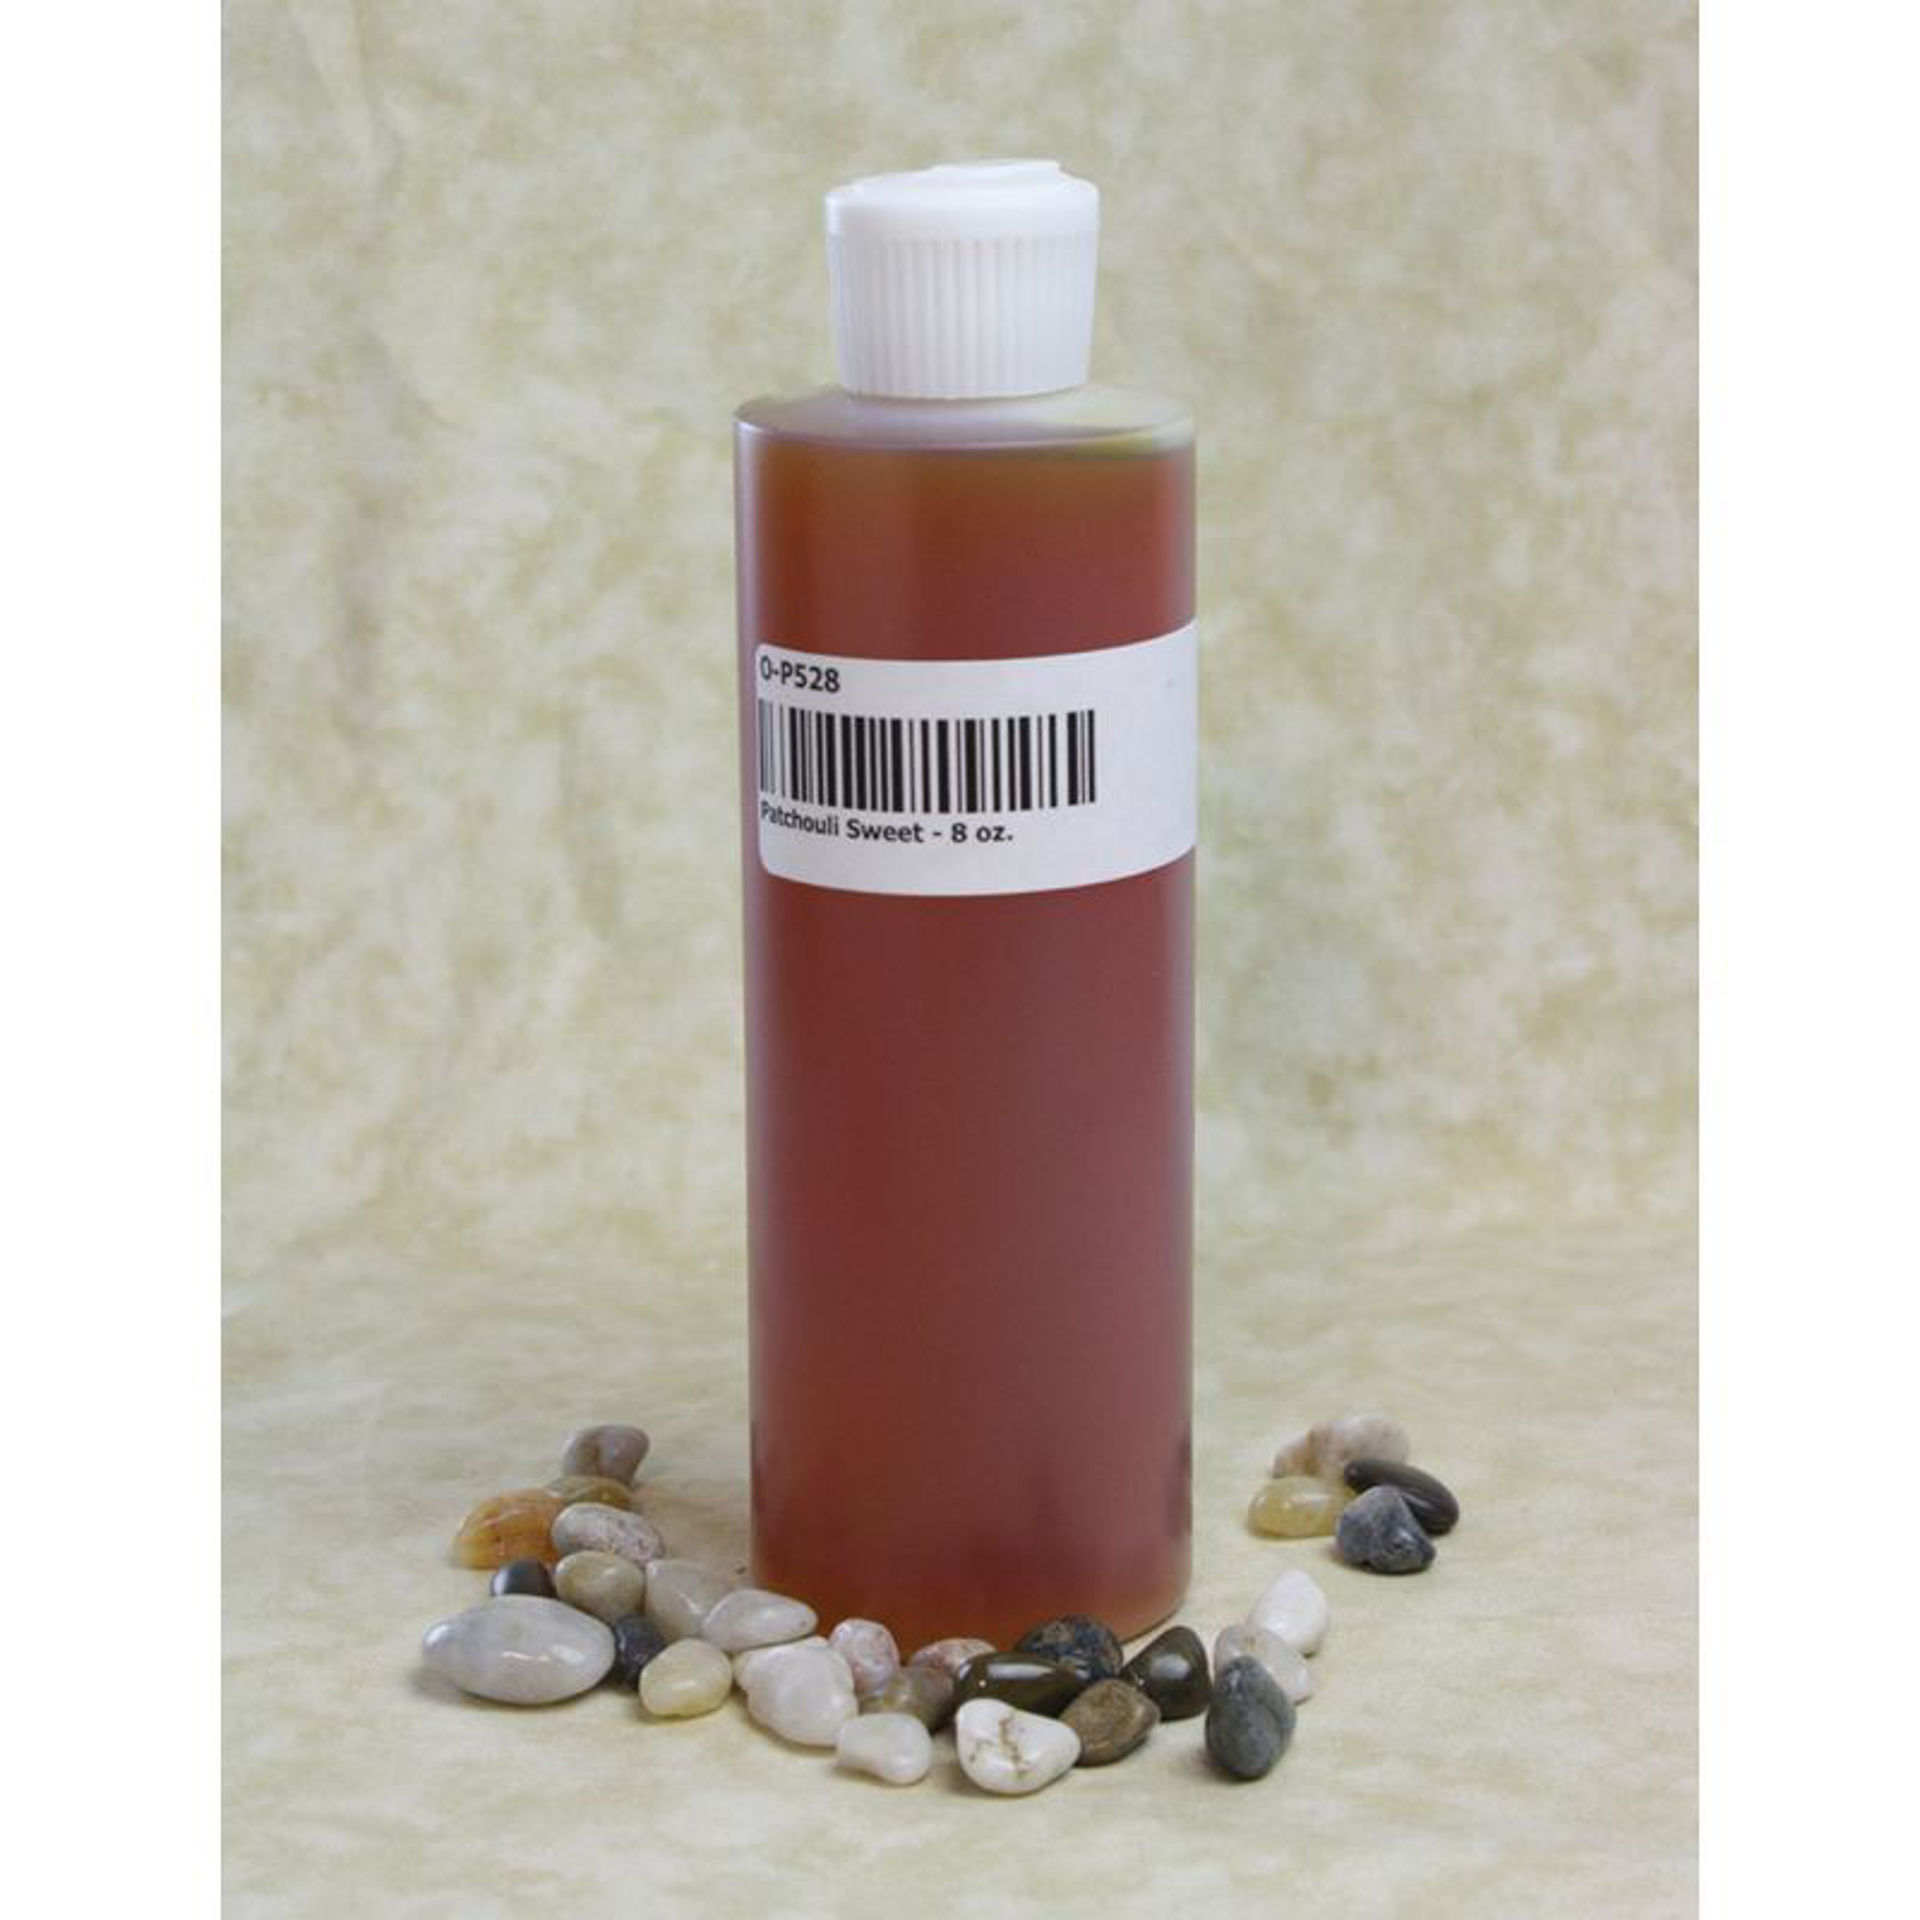 Picture of Patchouli Sweet - 8 oz.